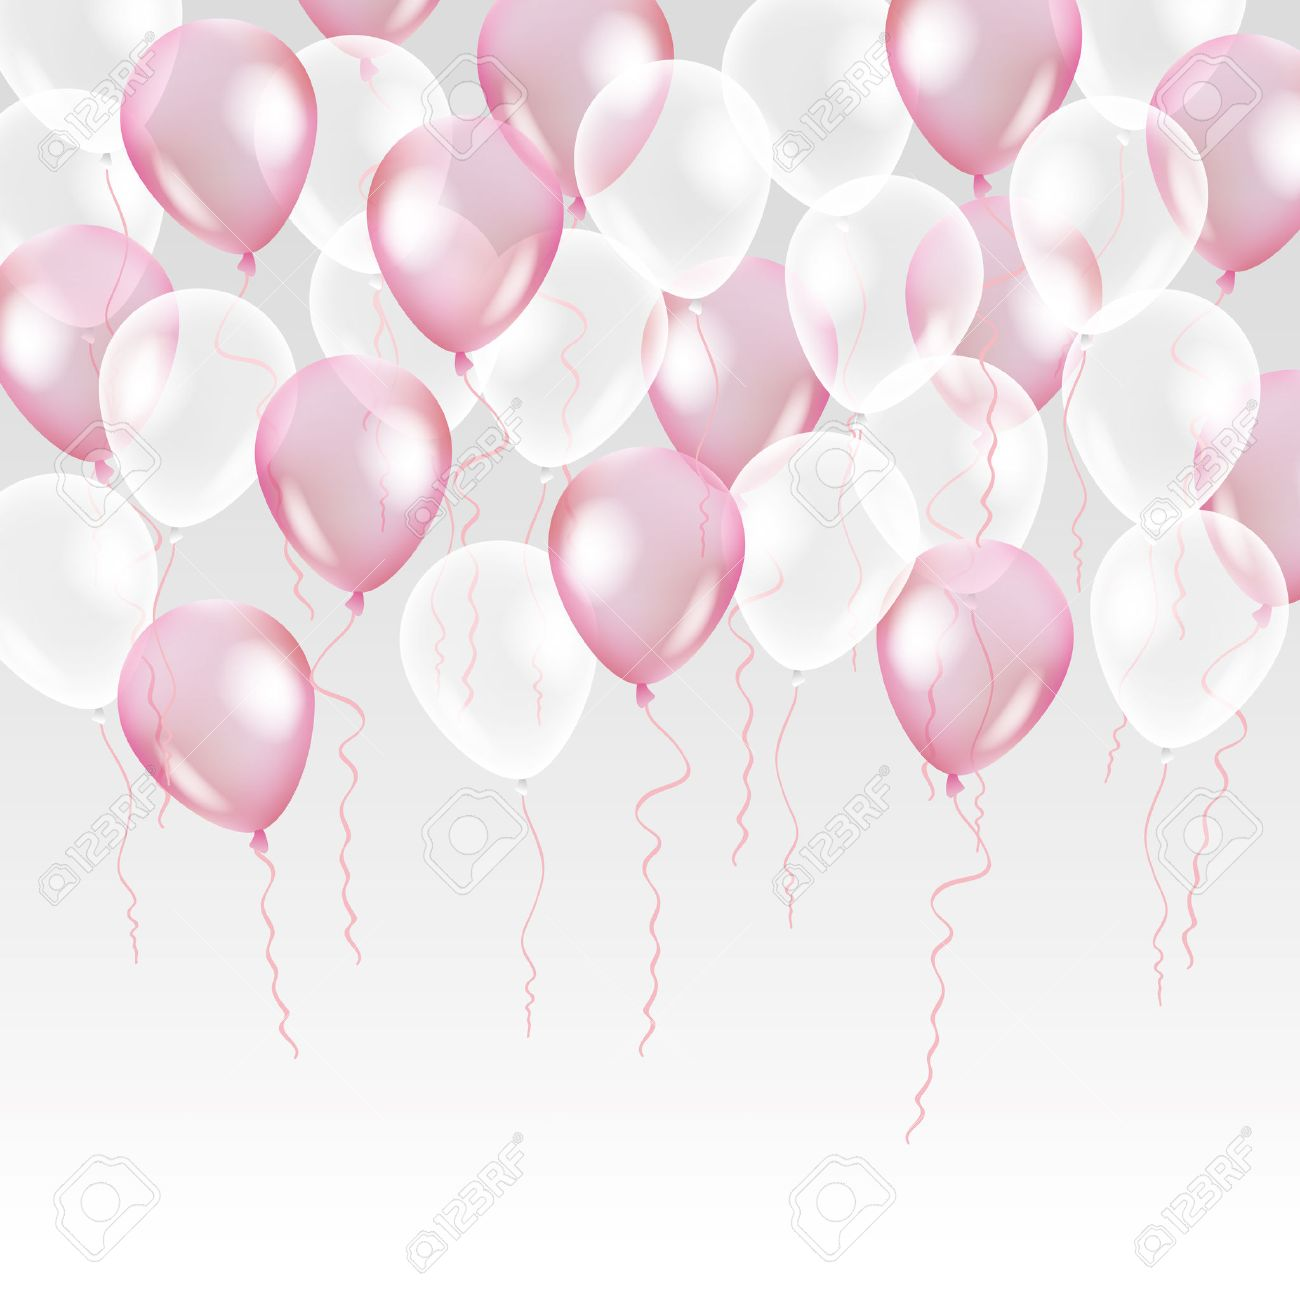 Pink transparent balloon on background. Frosted party balloons for event design. Balloons isolated in the air. Party decorations for birthday, anniversary, celebration. Shine transparent balloon. - 63415797